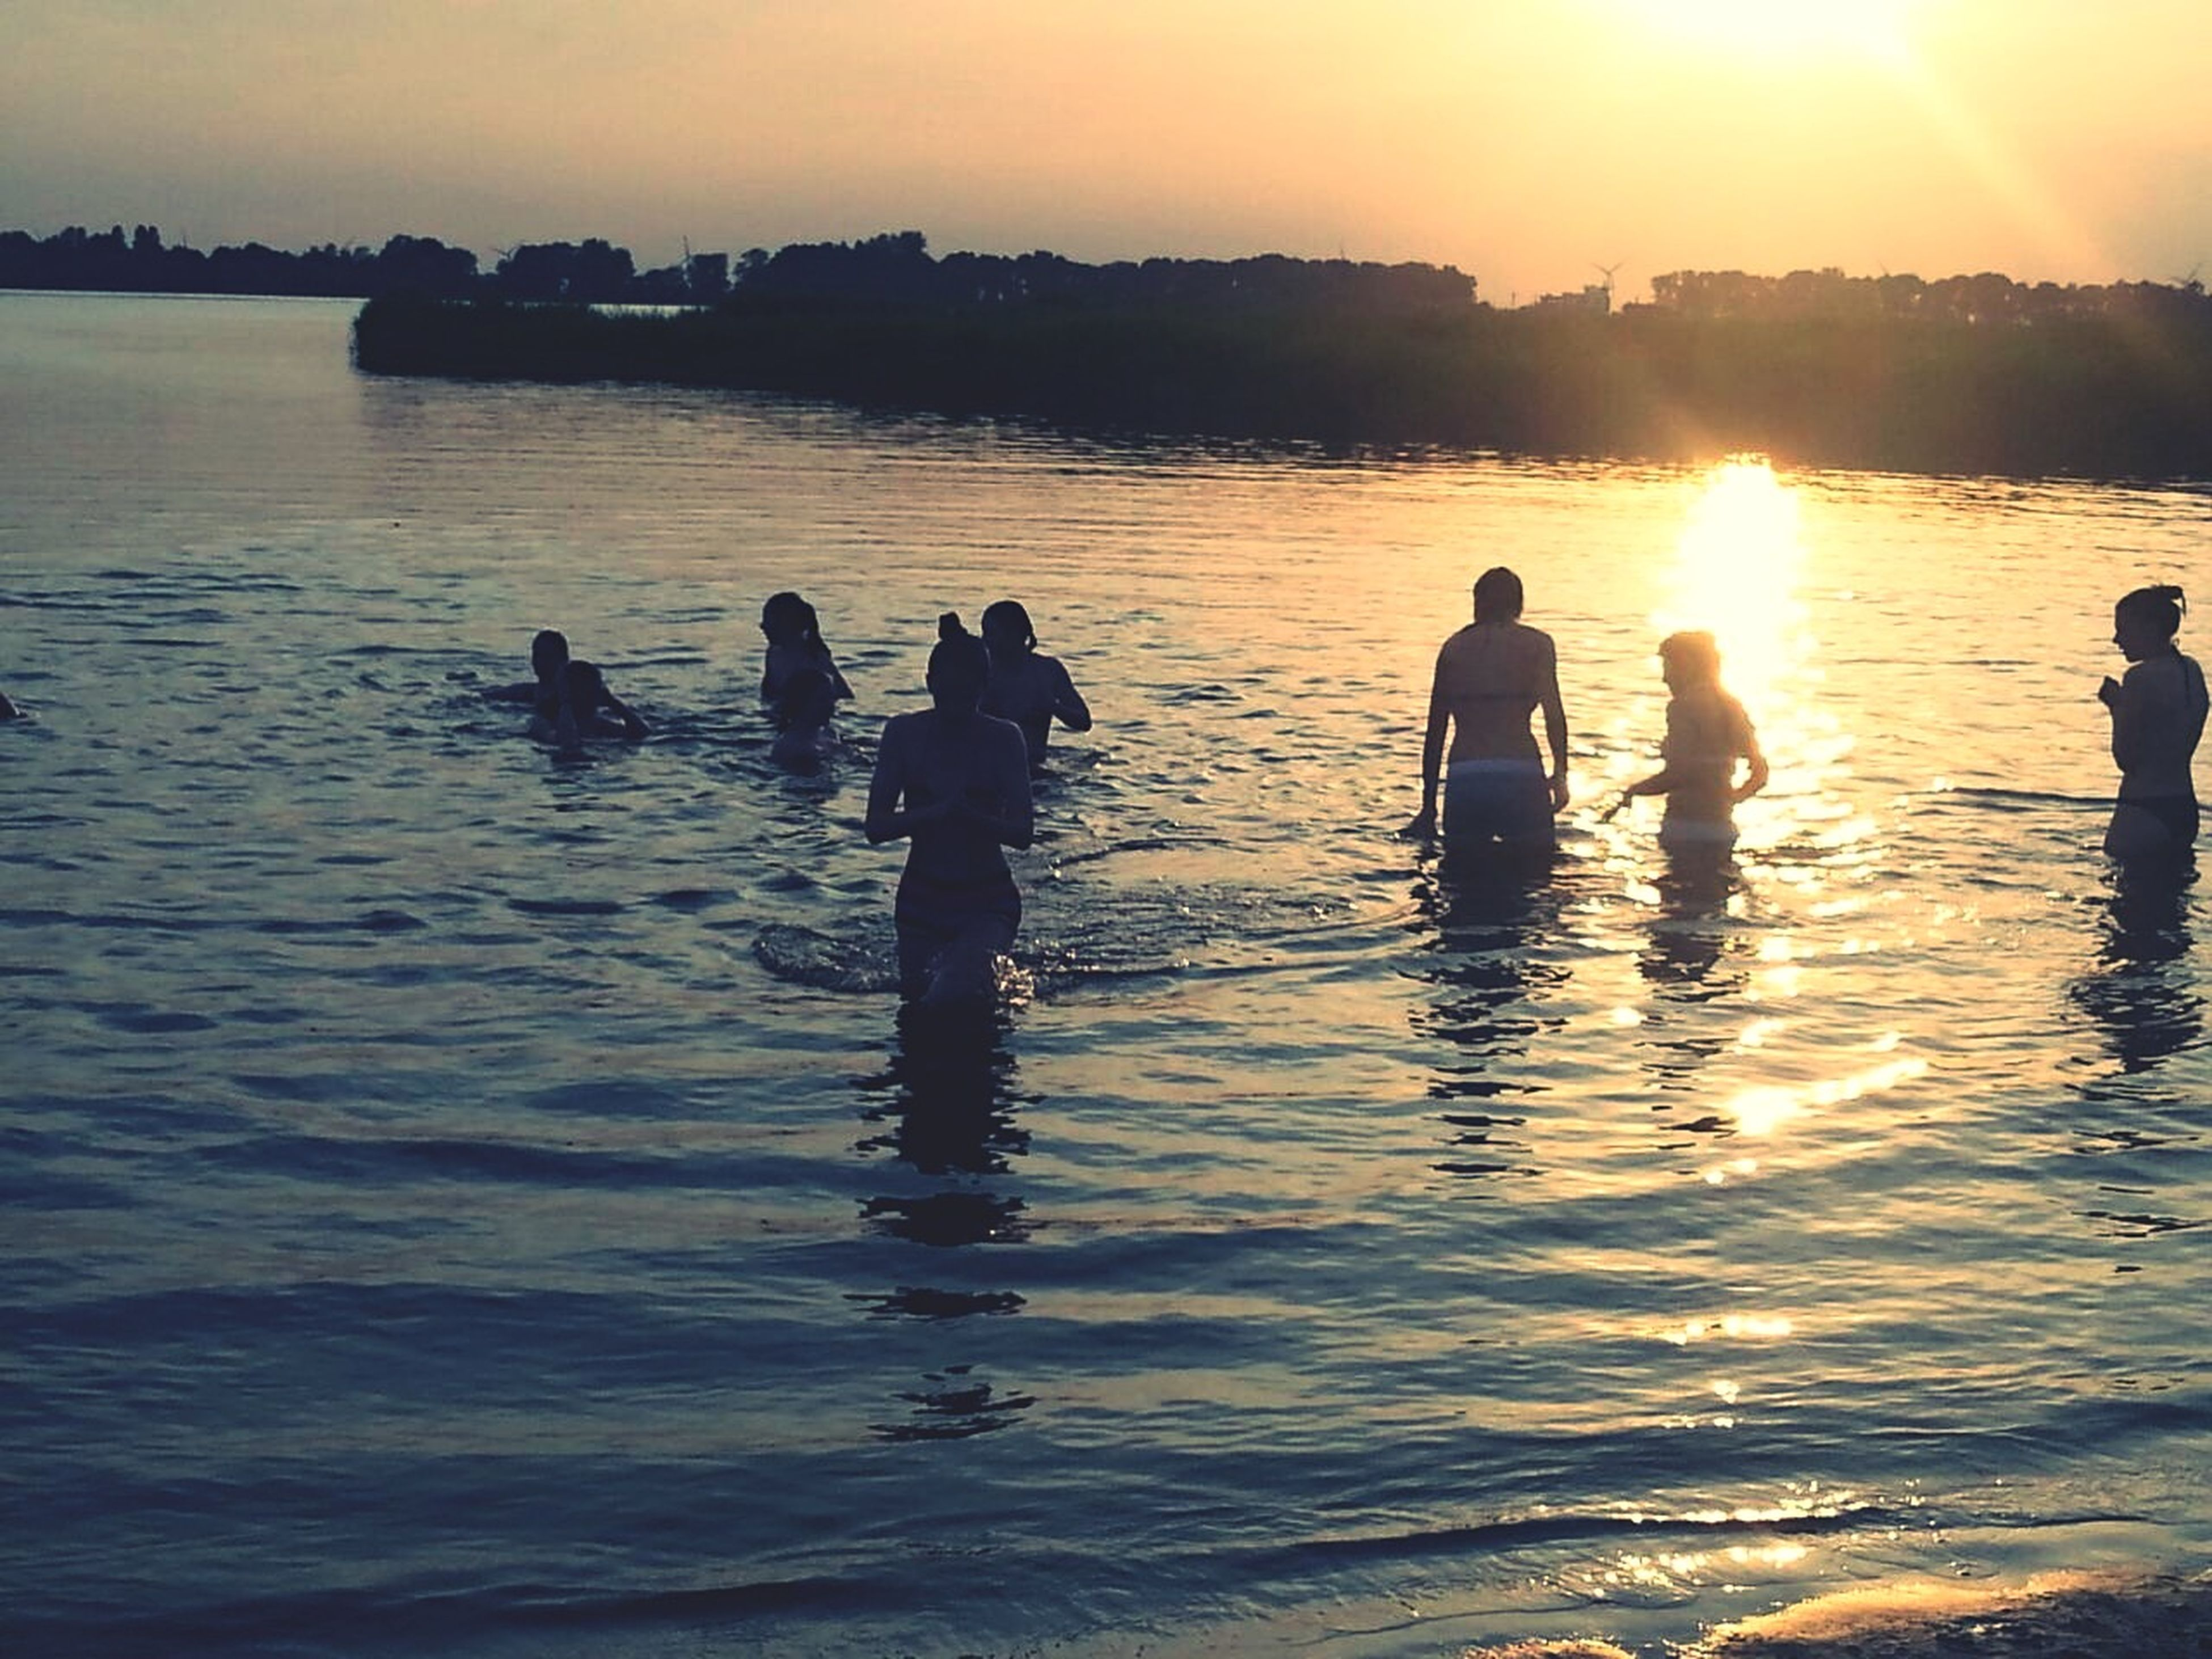 water, sunset, silhouette, reflection, sun, sea, sunlight, leisure activity, lifestyles, men, beauty in nature, nature, scenics, togetherness, sky, tranquility, tranquil scene, beach, lake